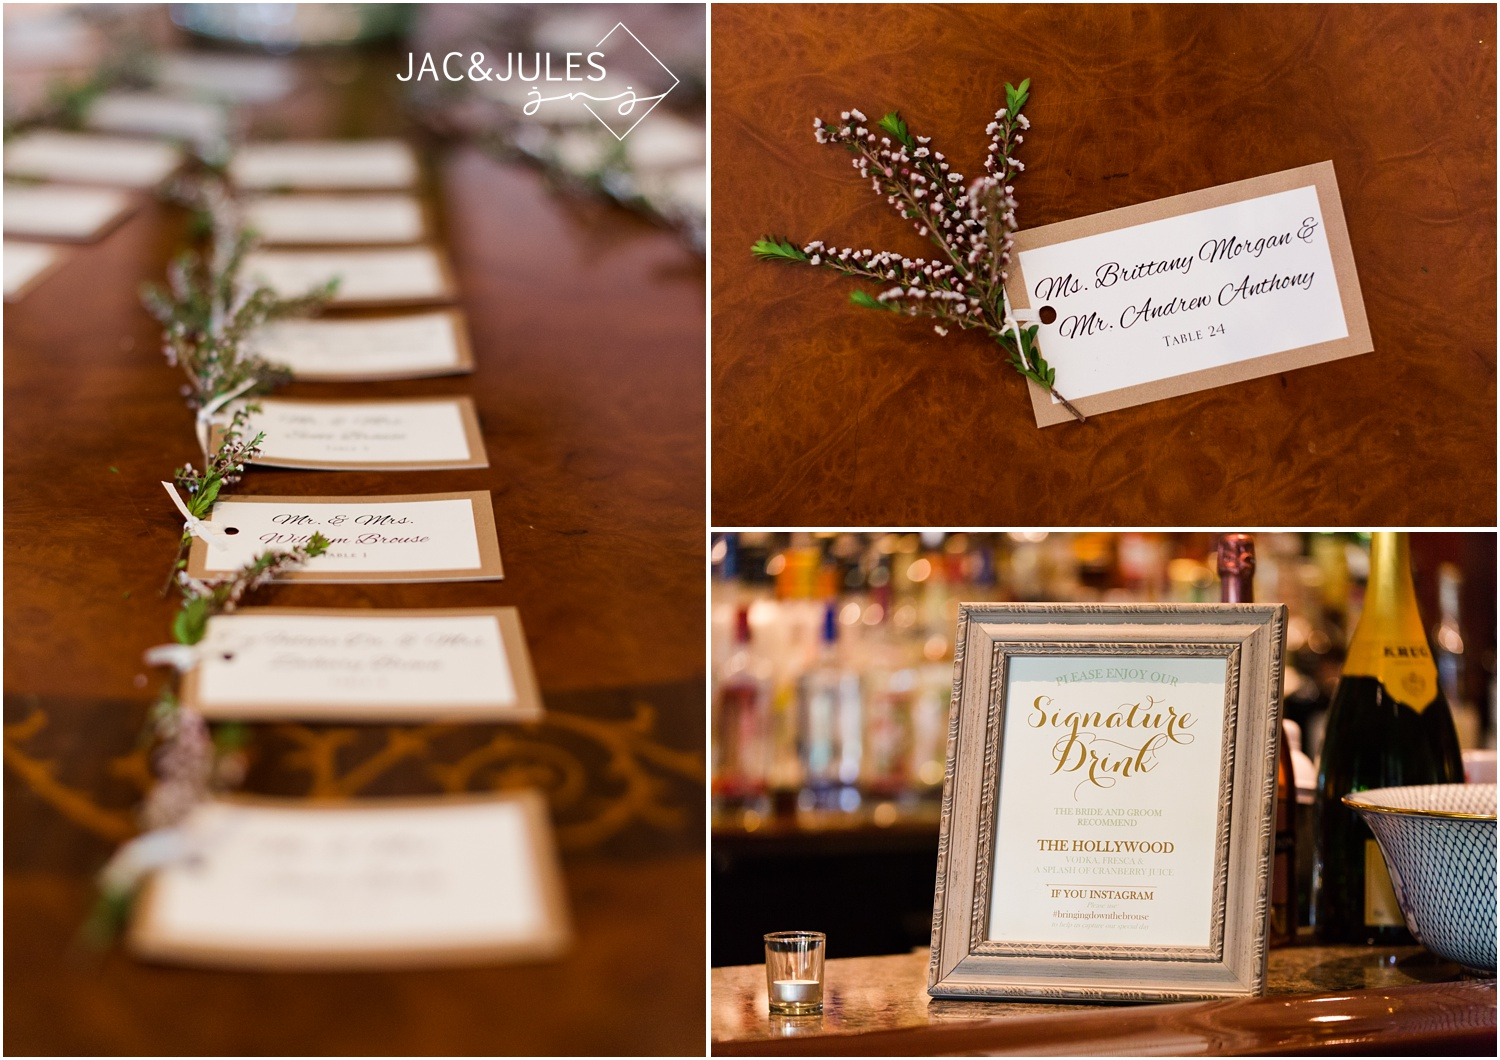 reception decor at eagle oaks golf and country club in wall, nj.